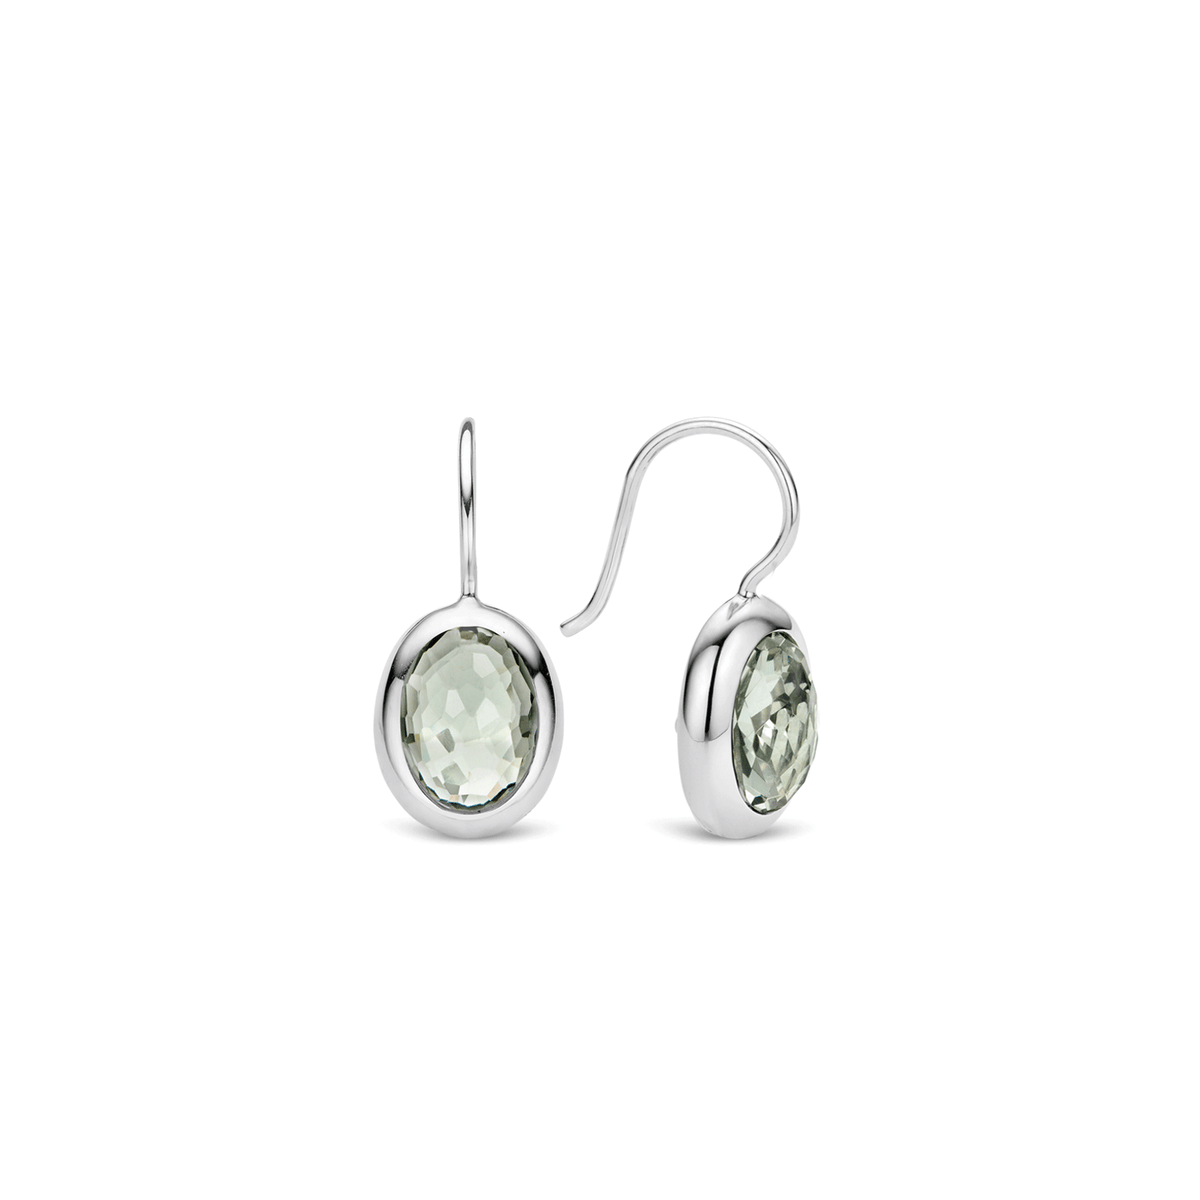 TI SENTO - Milano Earrings 7709GG